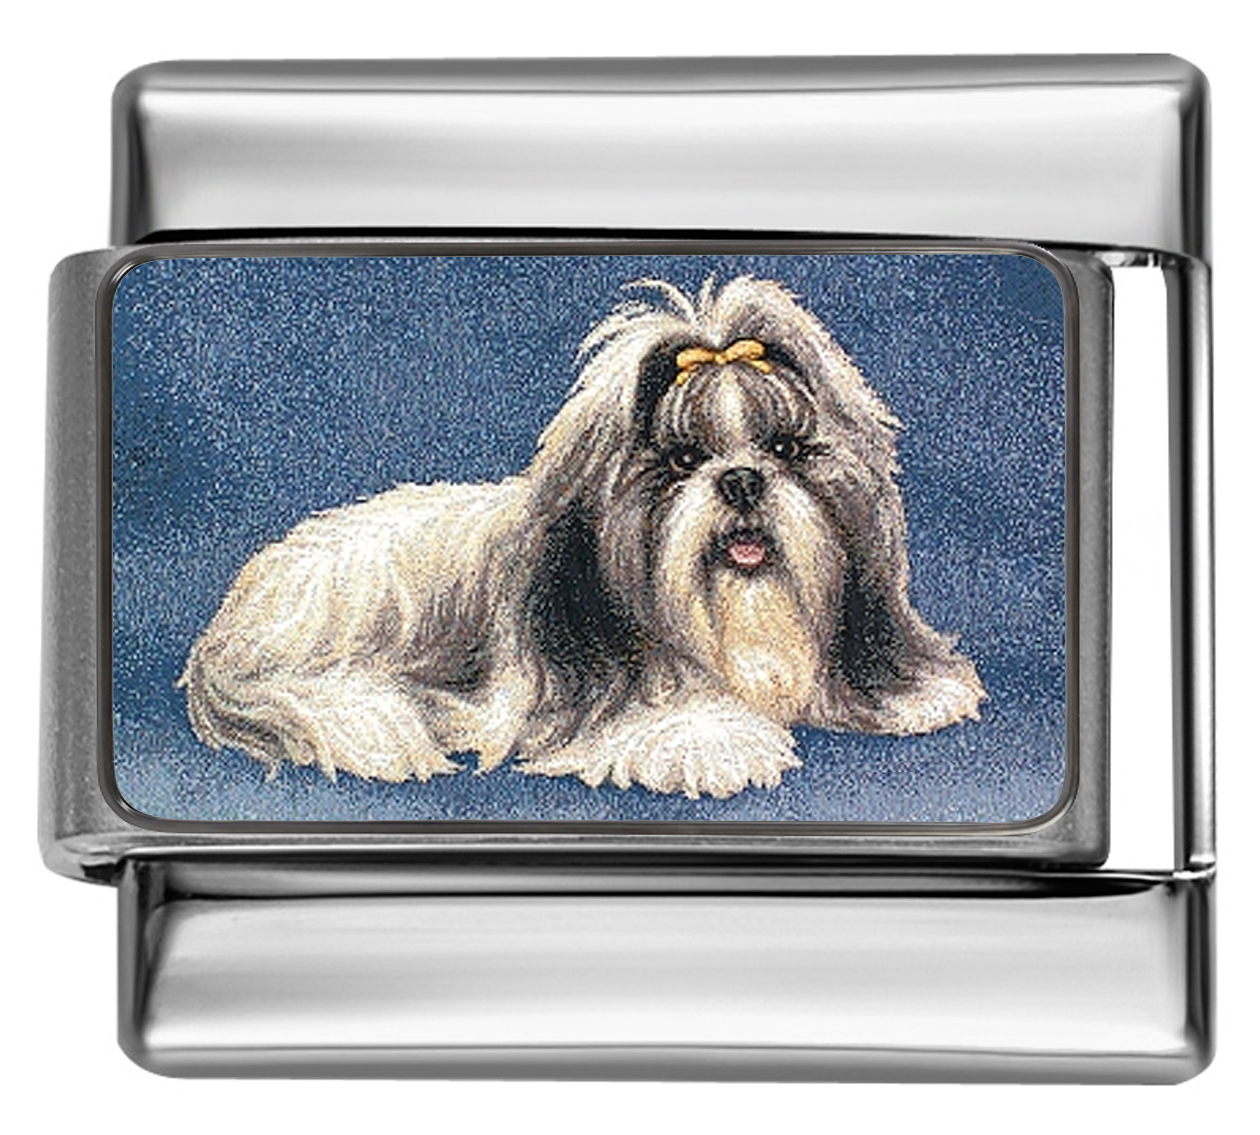 DG369-Shih-Tzu-Dog-3